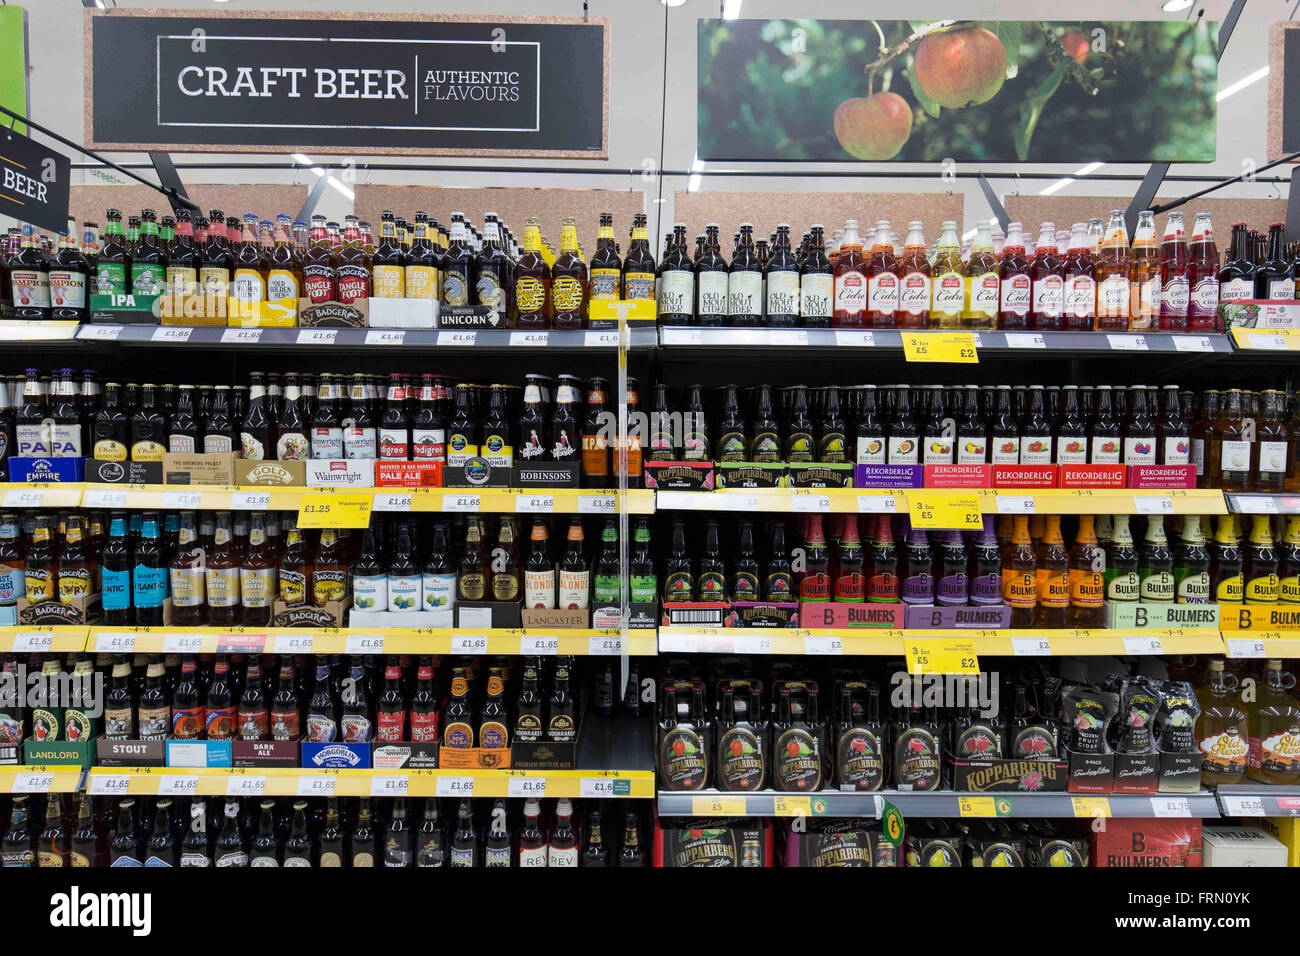 Craft Beers Morrisons